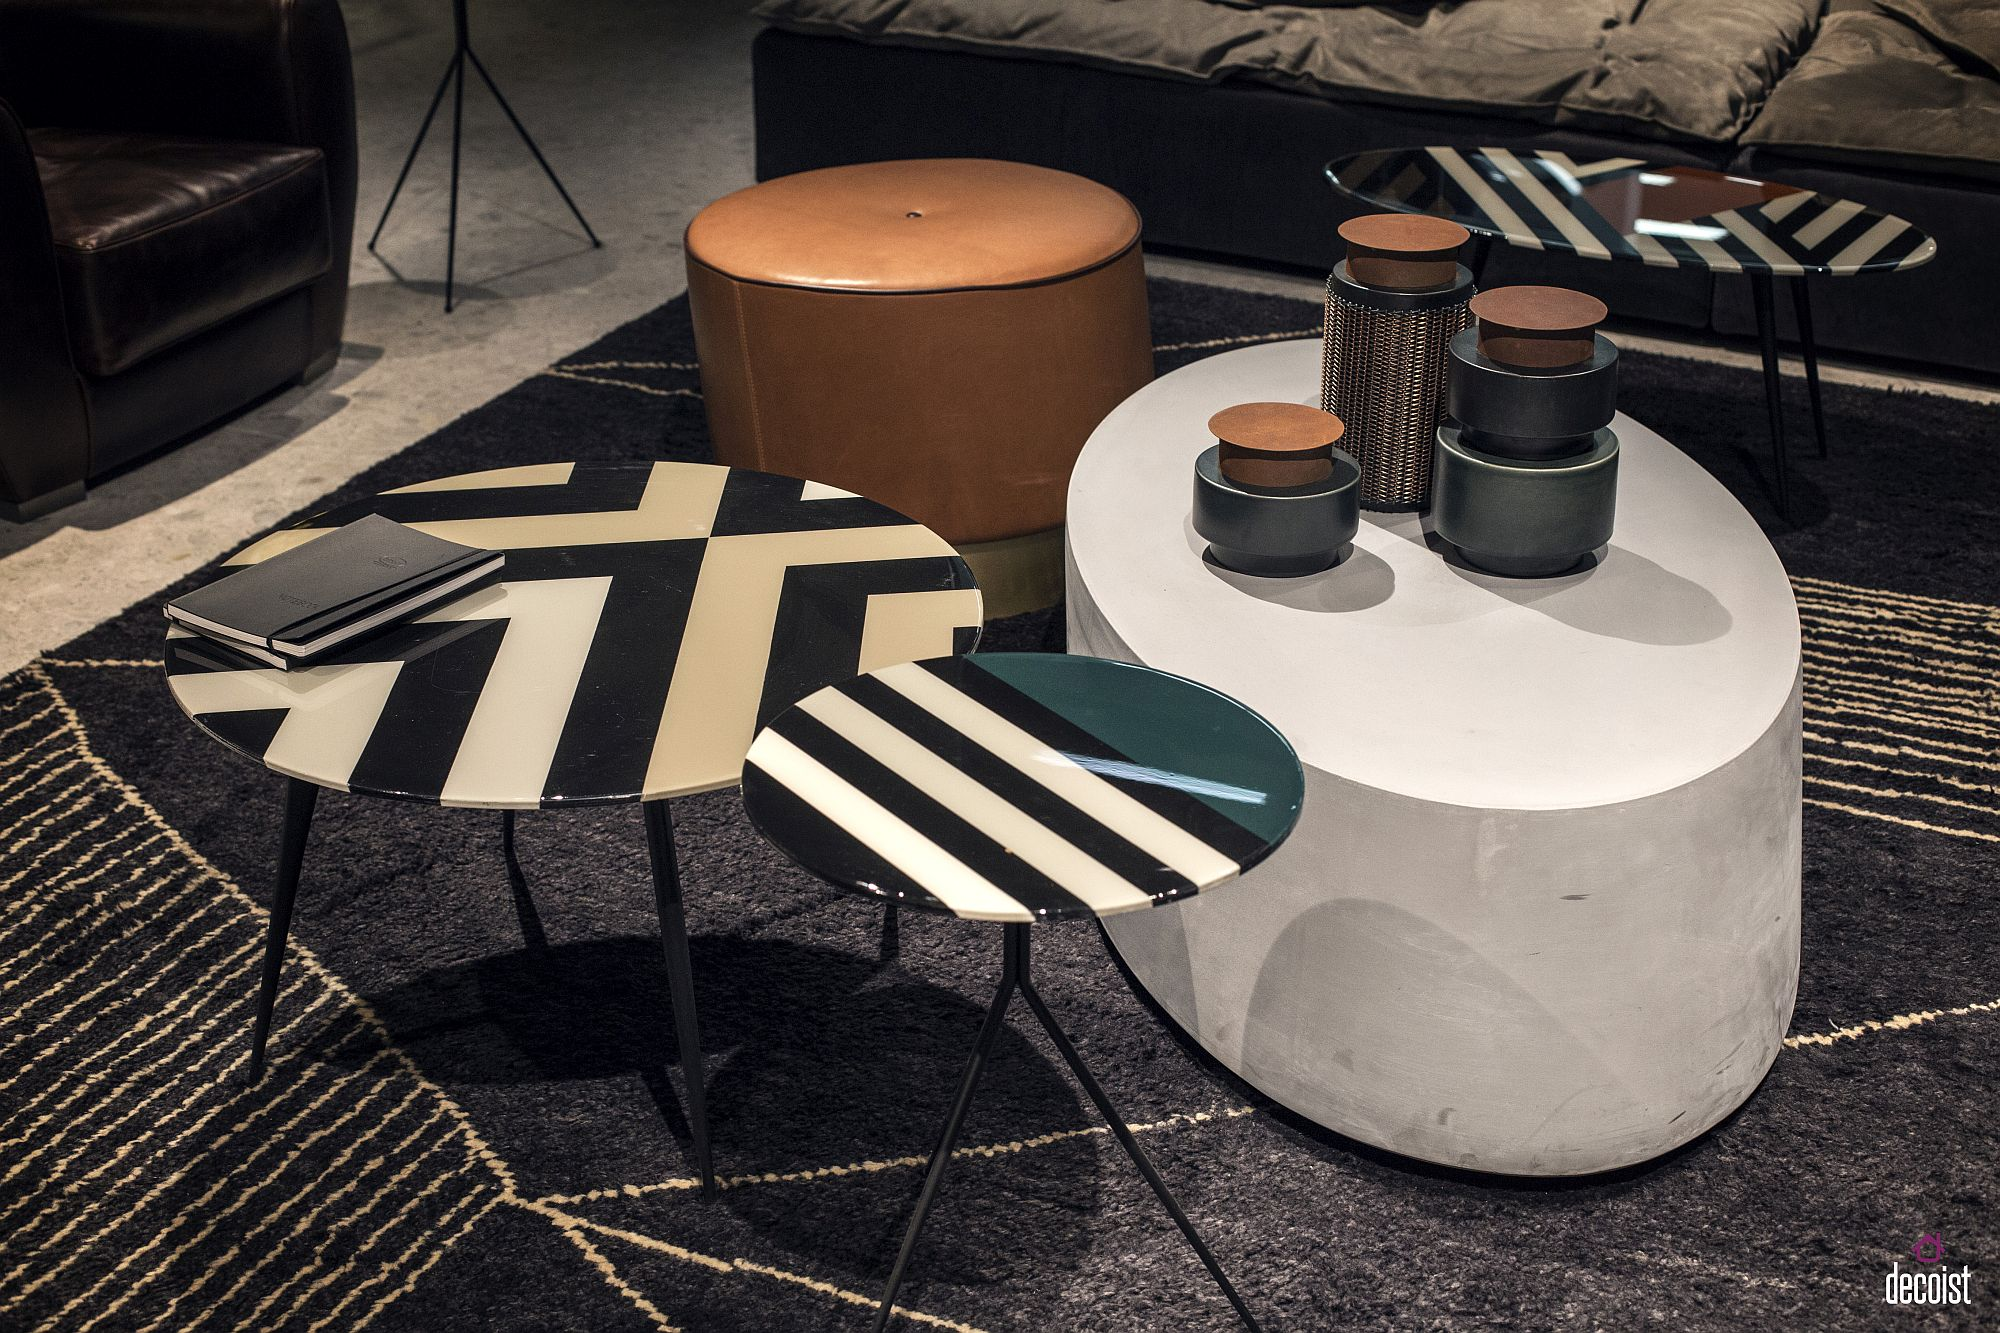 Geo design of the end tables with black and white flair